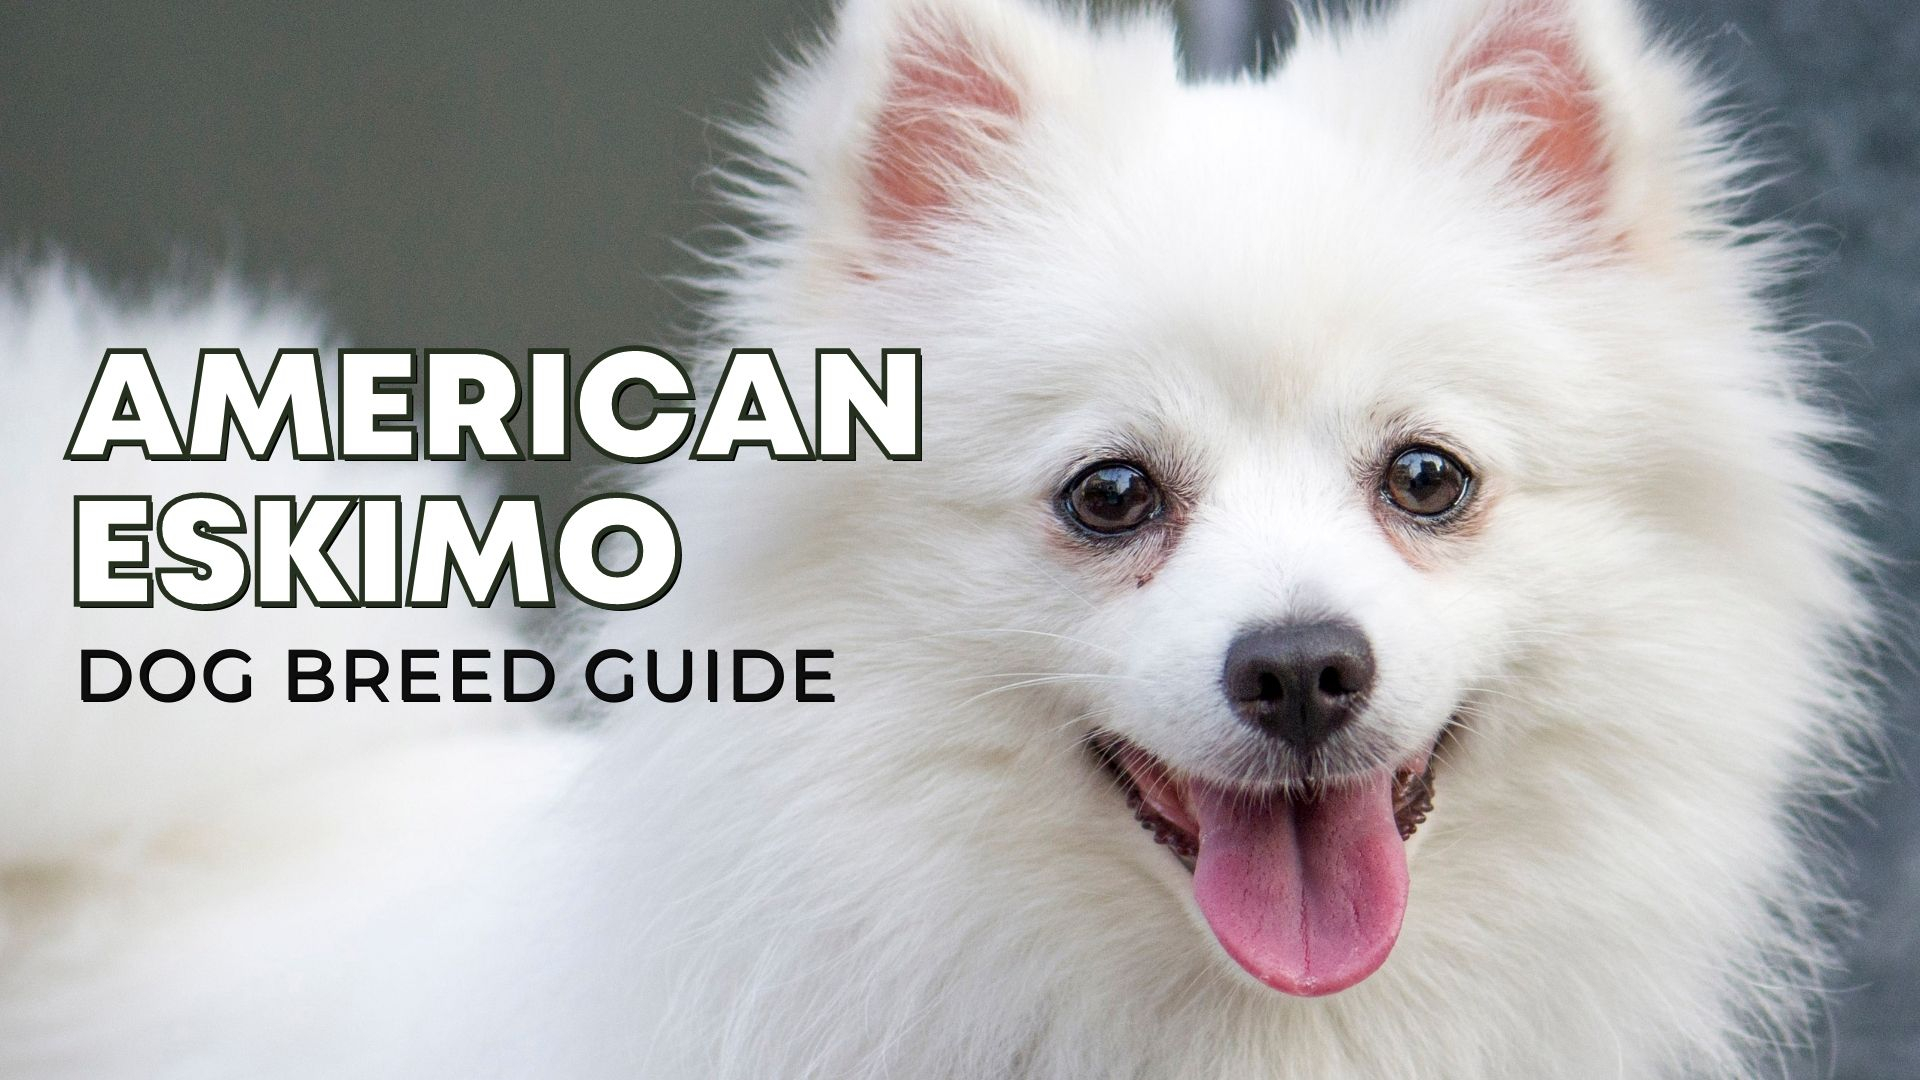 American Eskimo Dog Breed Guide: Facts, Health and Care